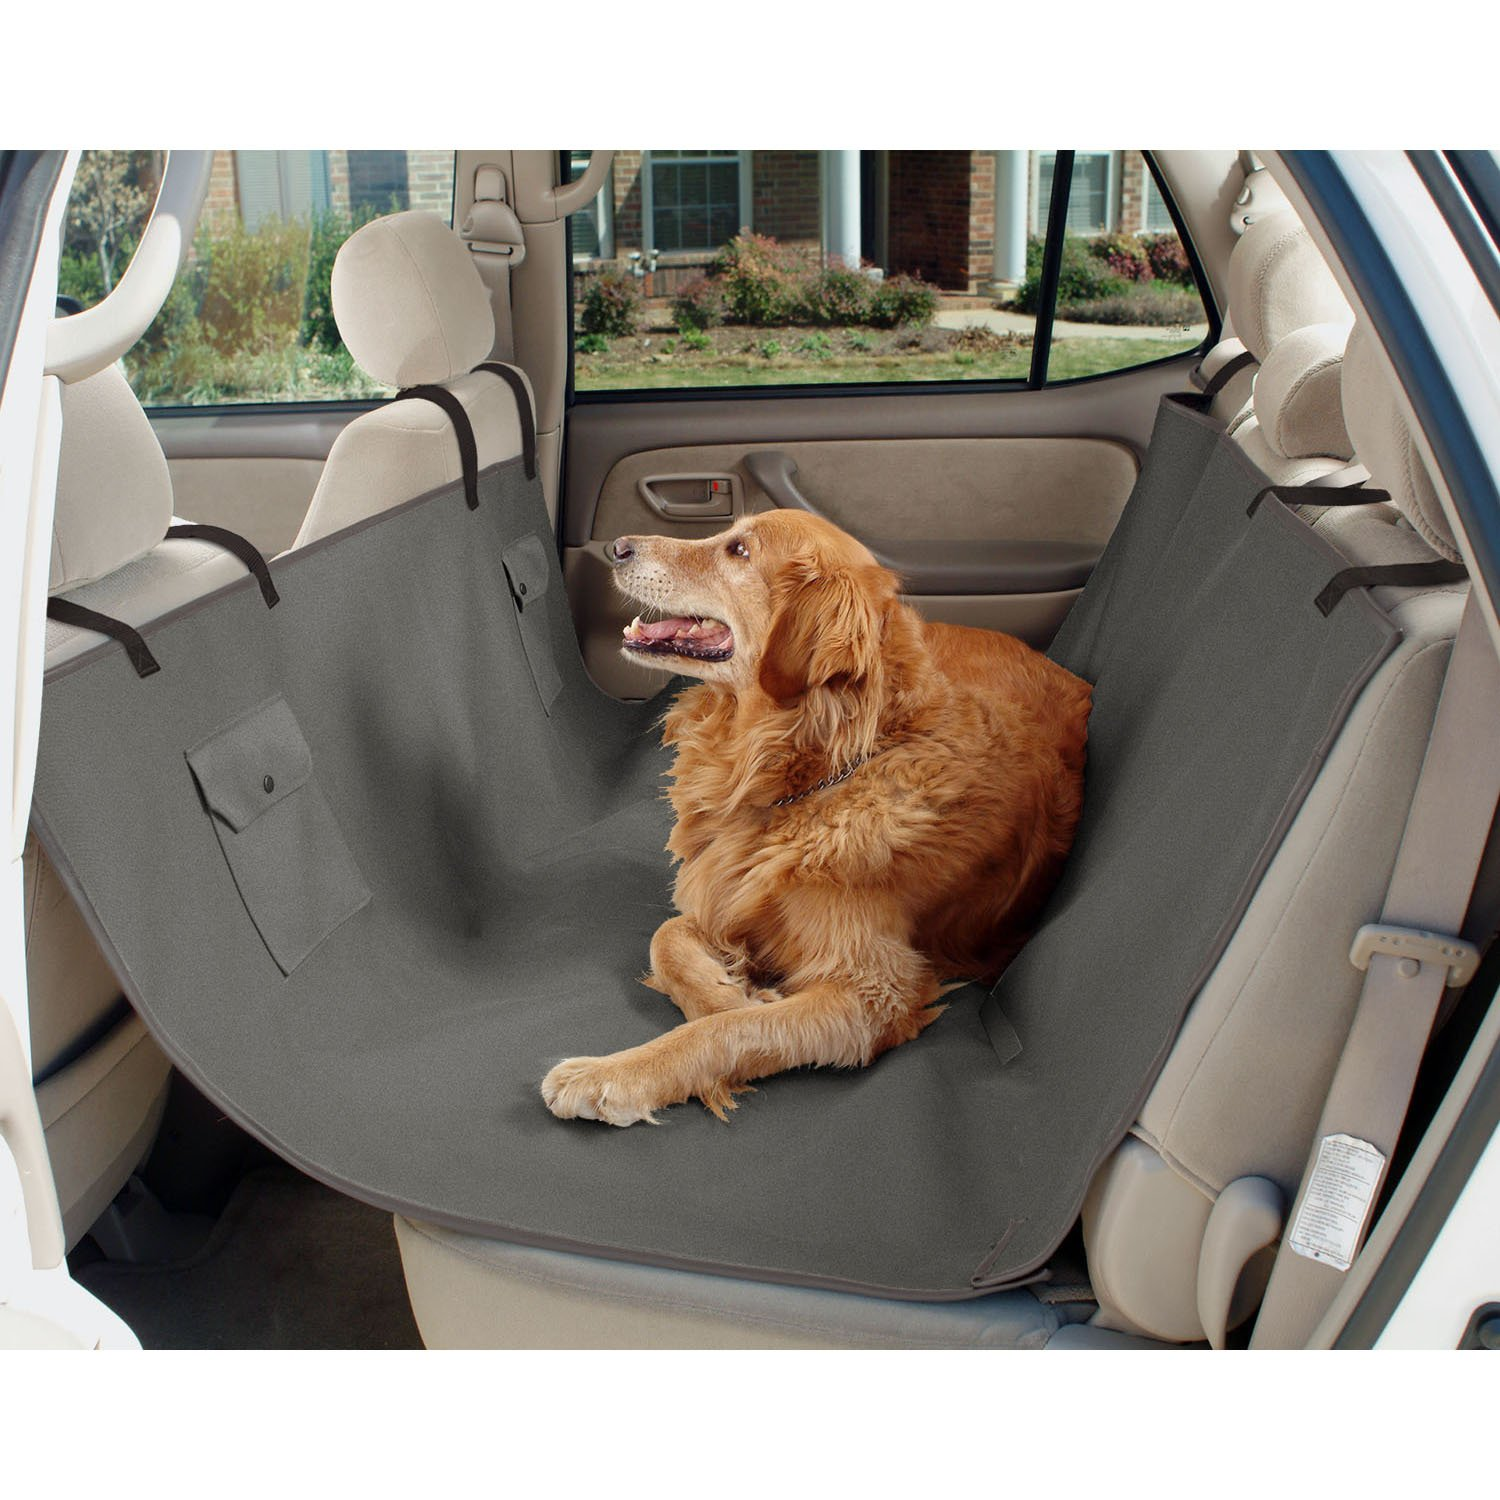 TRAVEL HOUND Hammock Seat Cover, Durable, Polyester Material